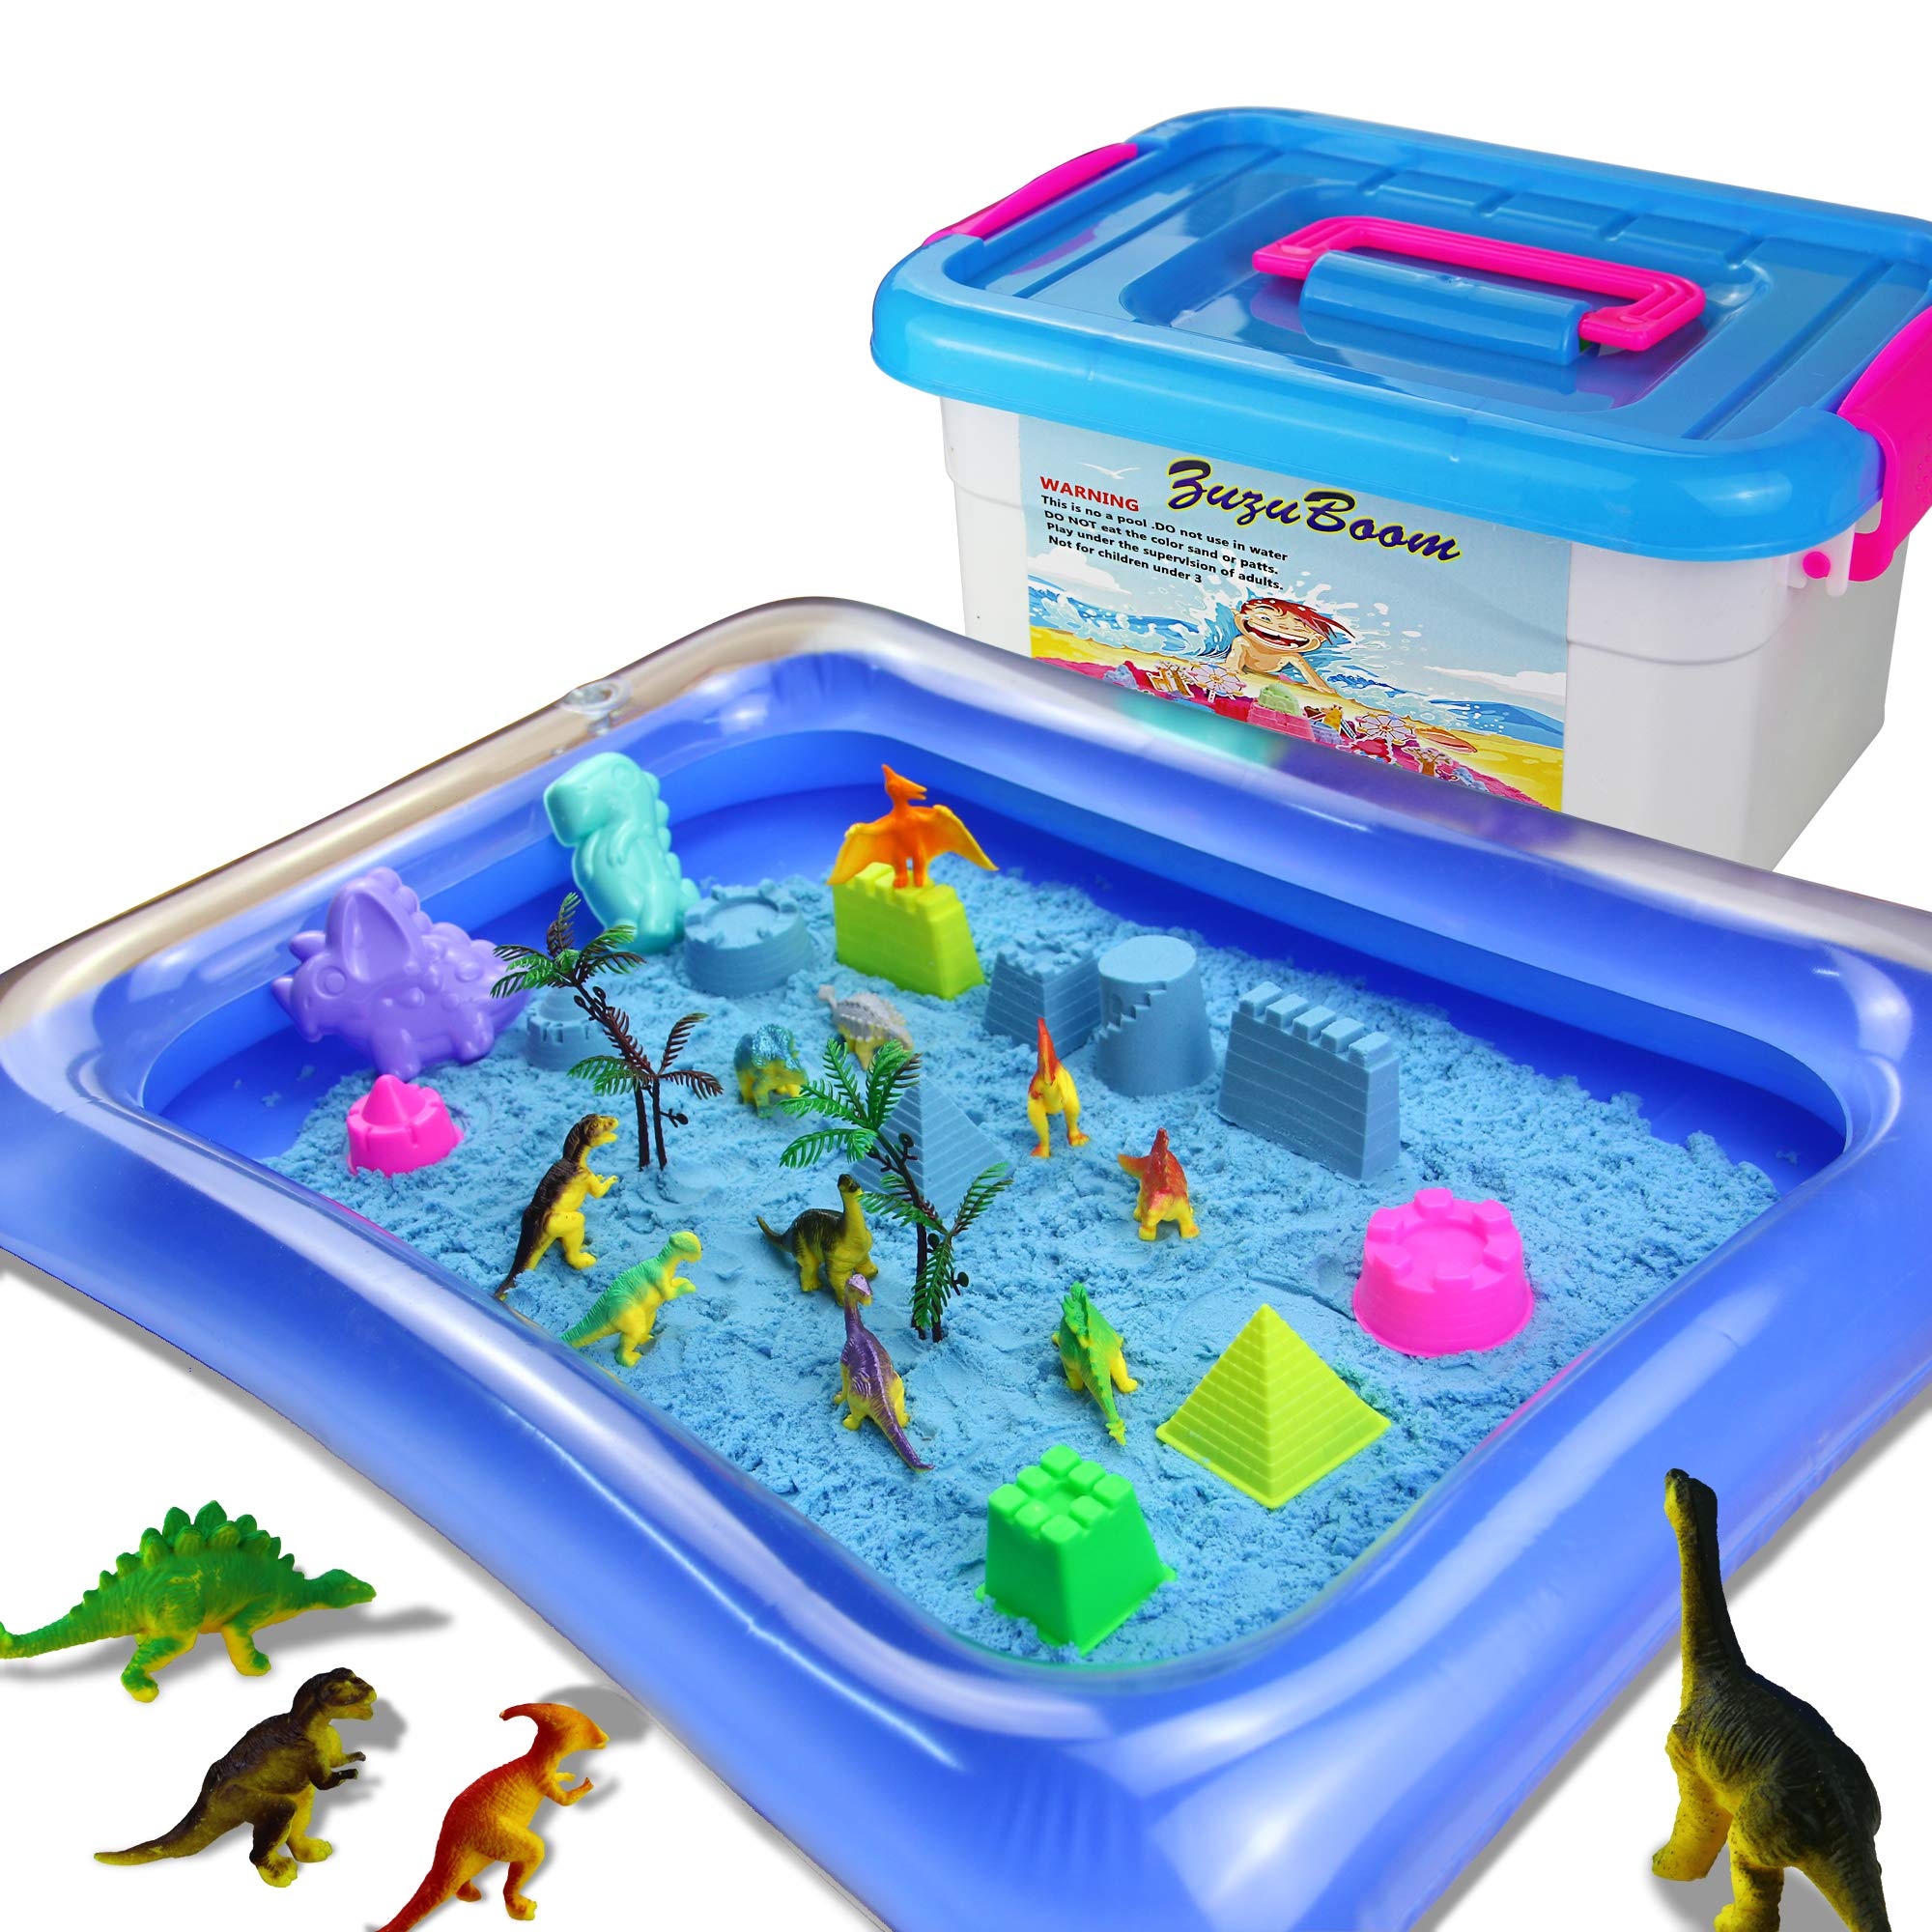 Zuzu Boom  Play Sand Toys and Sand Molds Kit - Set Includes: 2 Pound Play Sand, 38 Pieces Sand Molds, Dinosaur Toys, Inflatable Tray, Storage Box, Castle by ZUZU BOOM